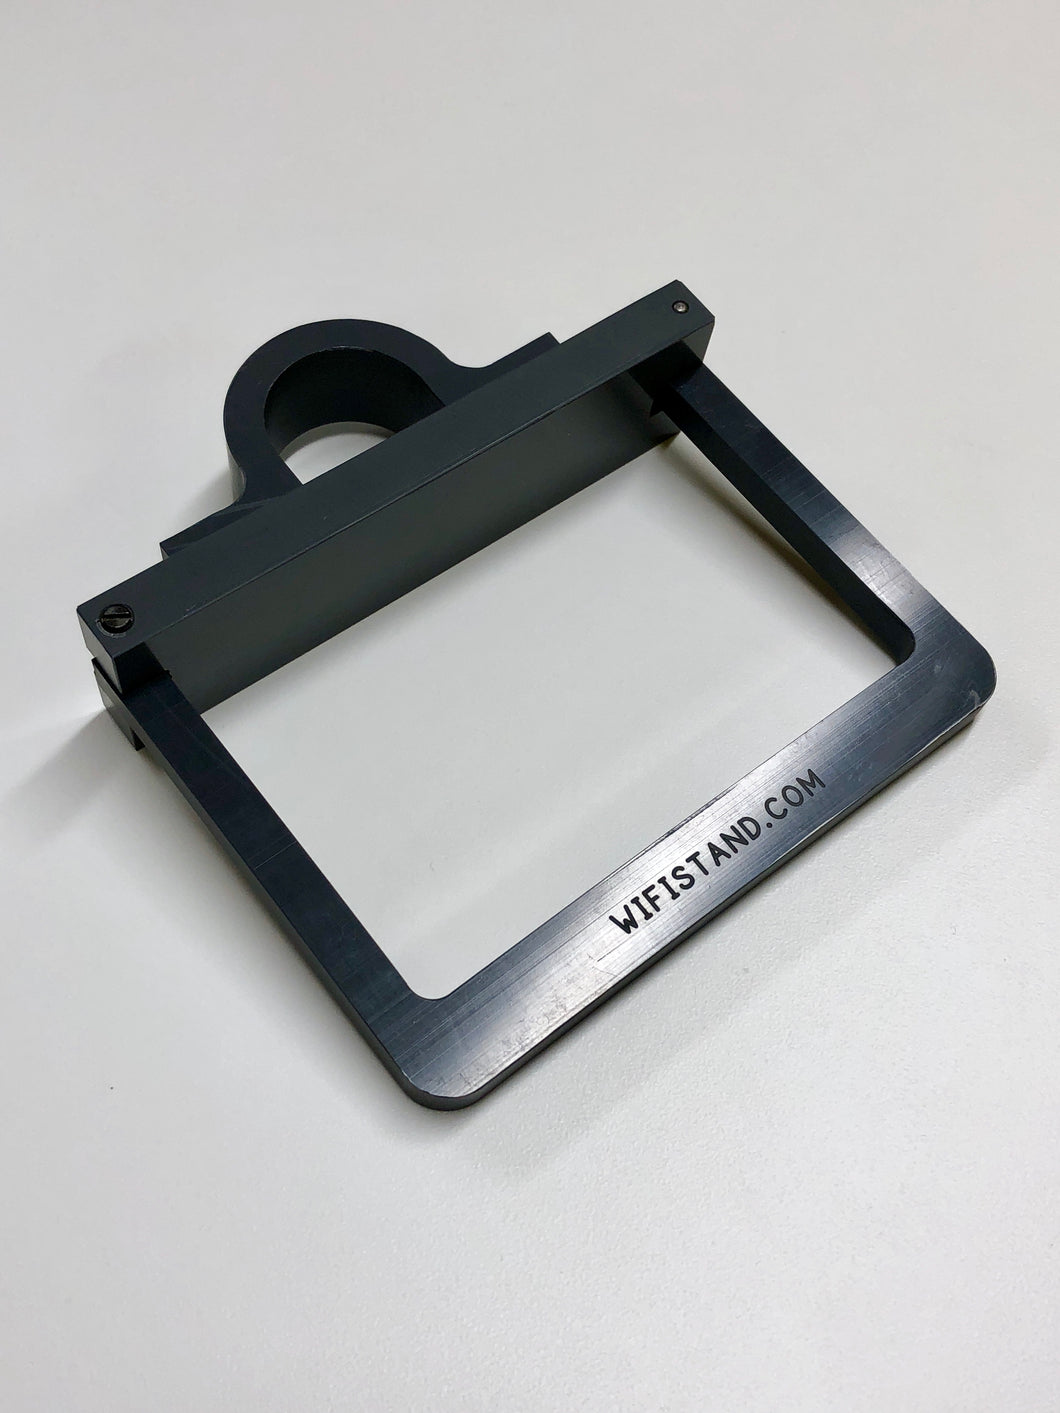 The WiFiStand Battery Bracket for VenVolt